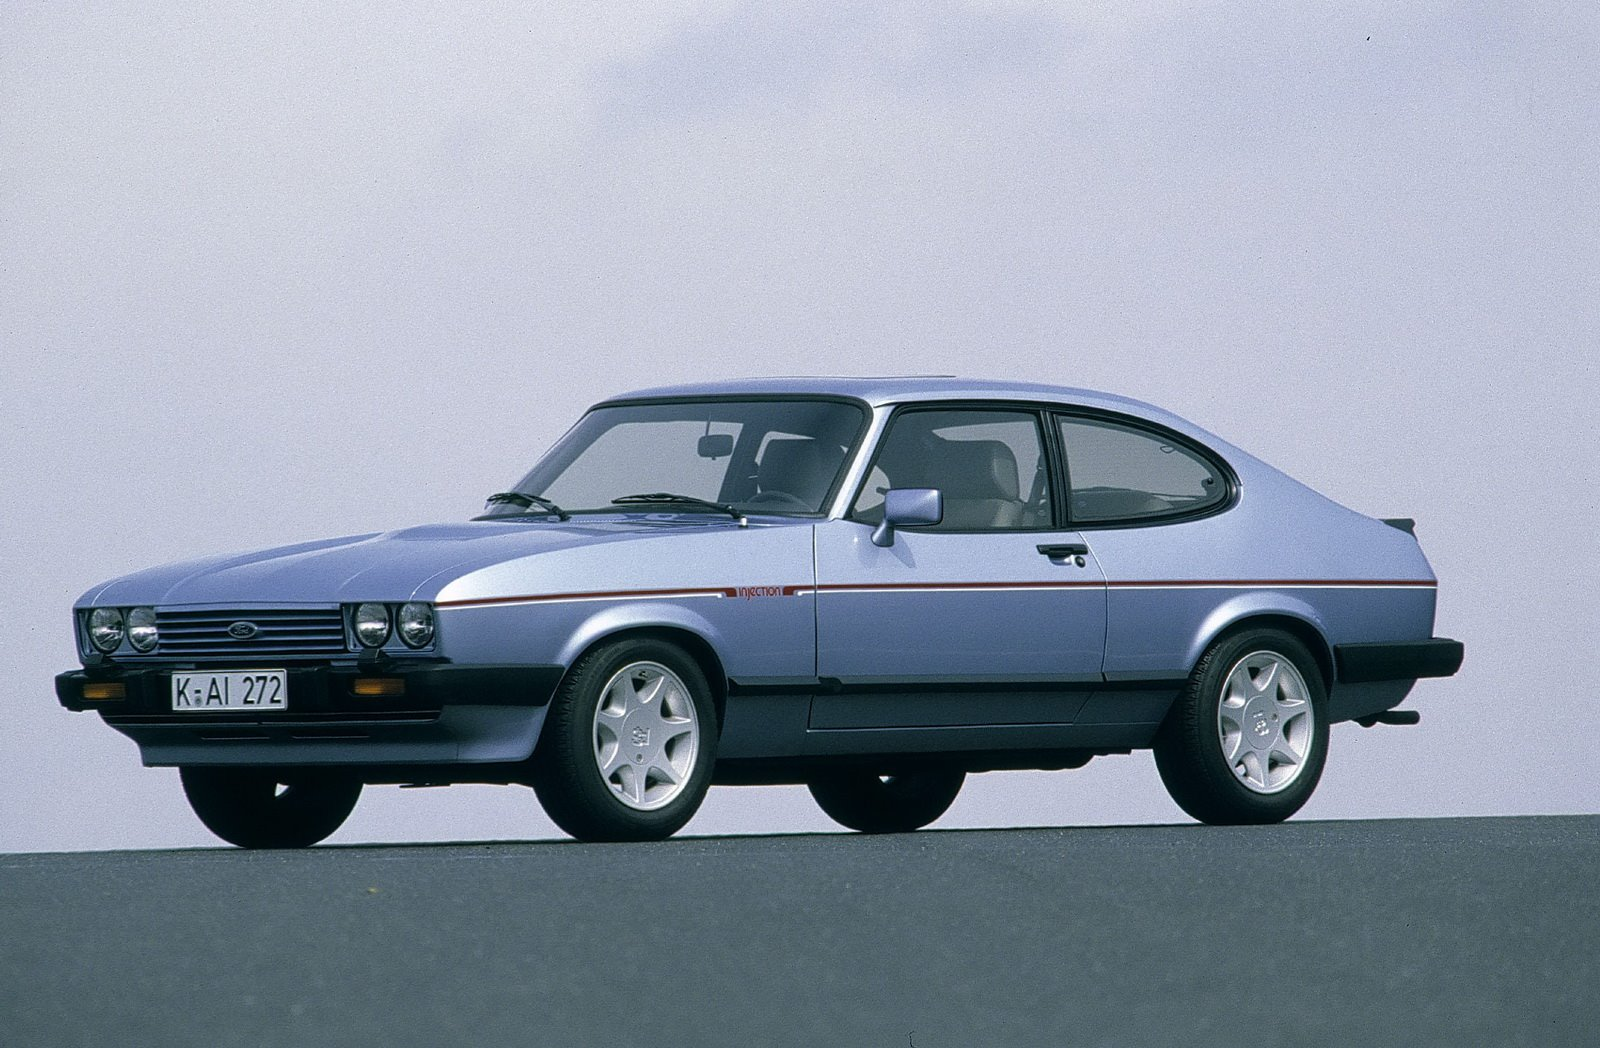 Ford Capri Wallpapers Vehicles Hq Ford Capri Pictures 4k Wallpapers 2019